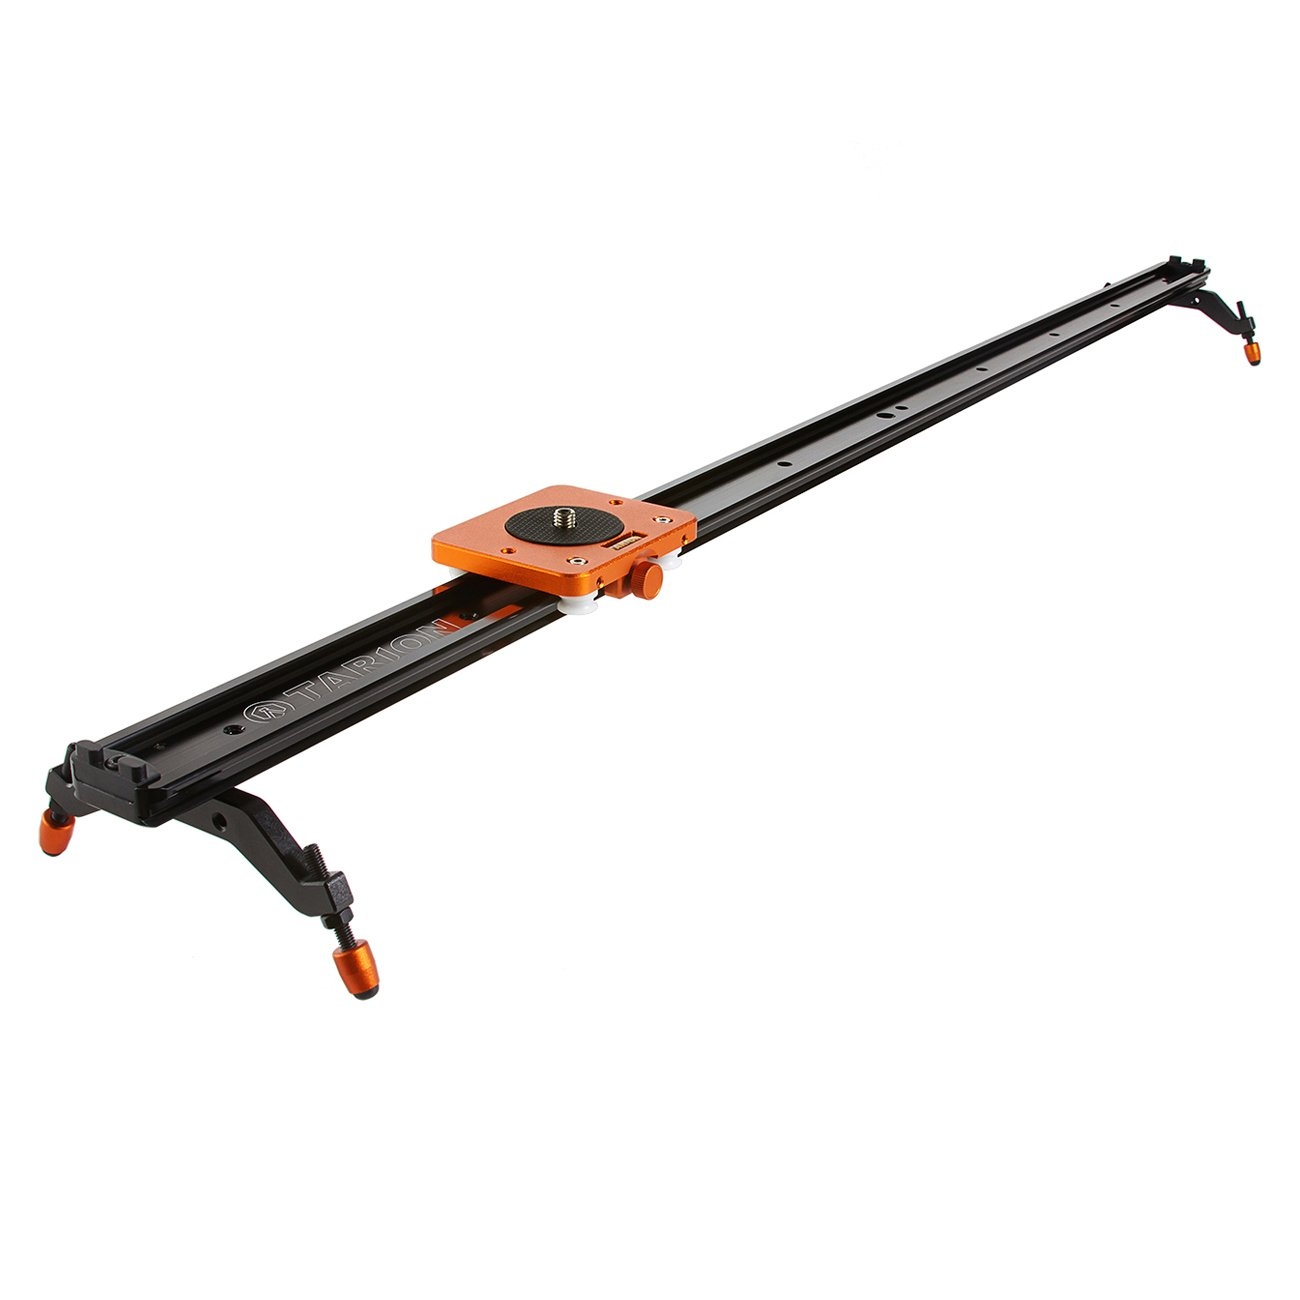 TARION TR-SD80 80cm 31.5'' Camera Track Slider Stabilizer Stabilization System with Portable Case for DSLR Video Camera Camcorder Canon Nikon (Upgraded Version) by TARION